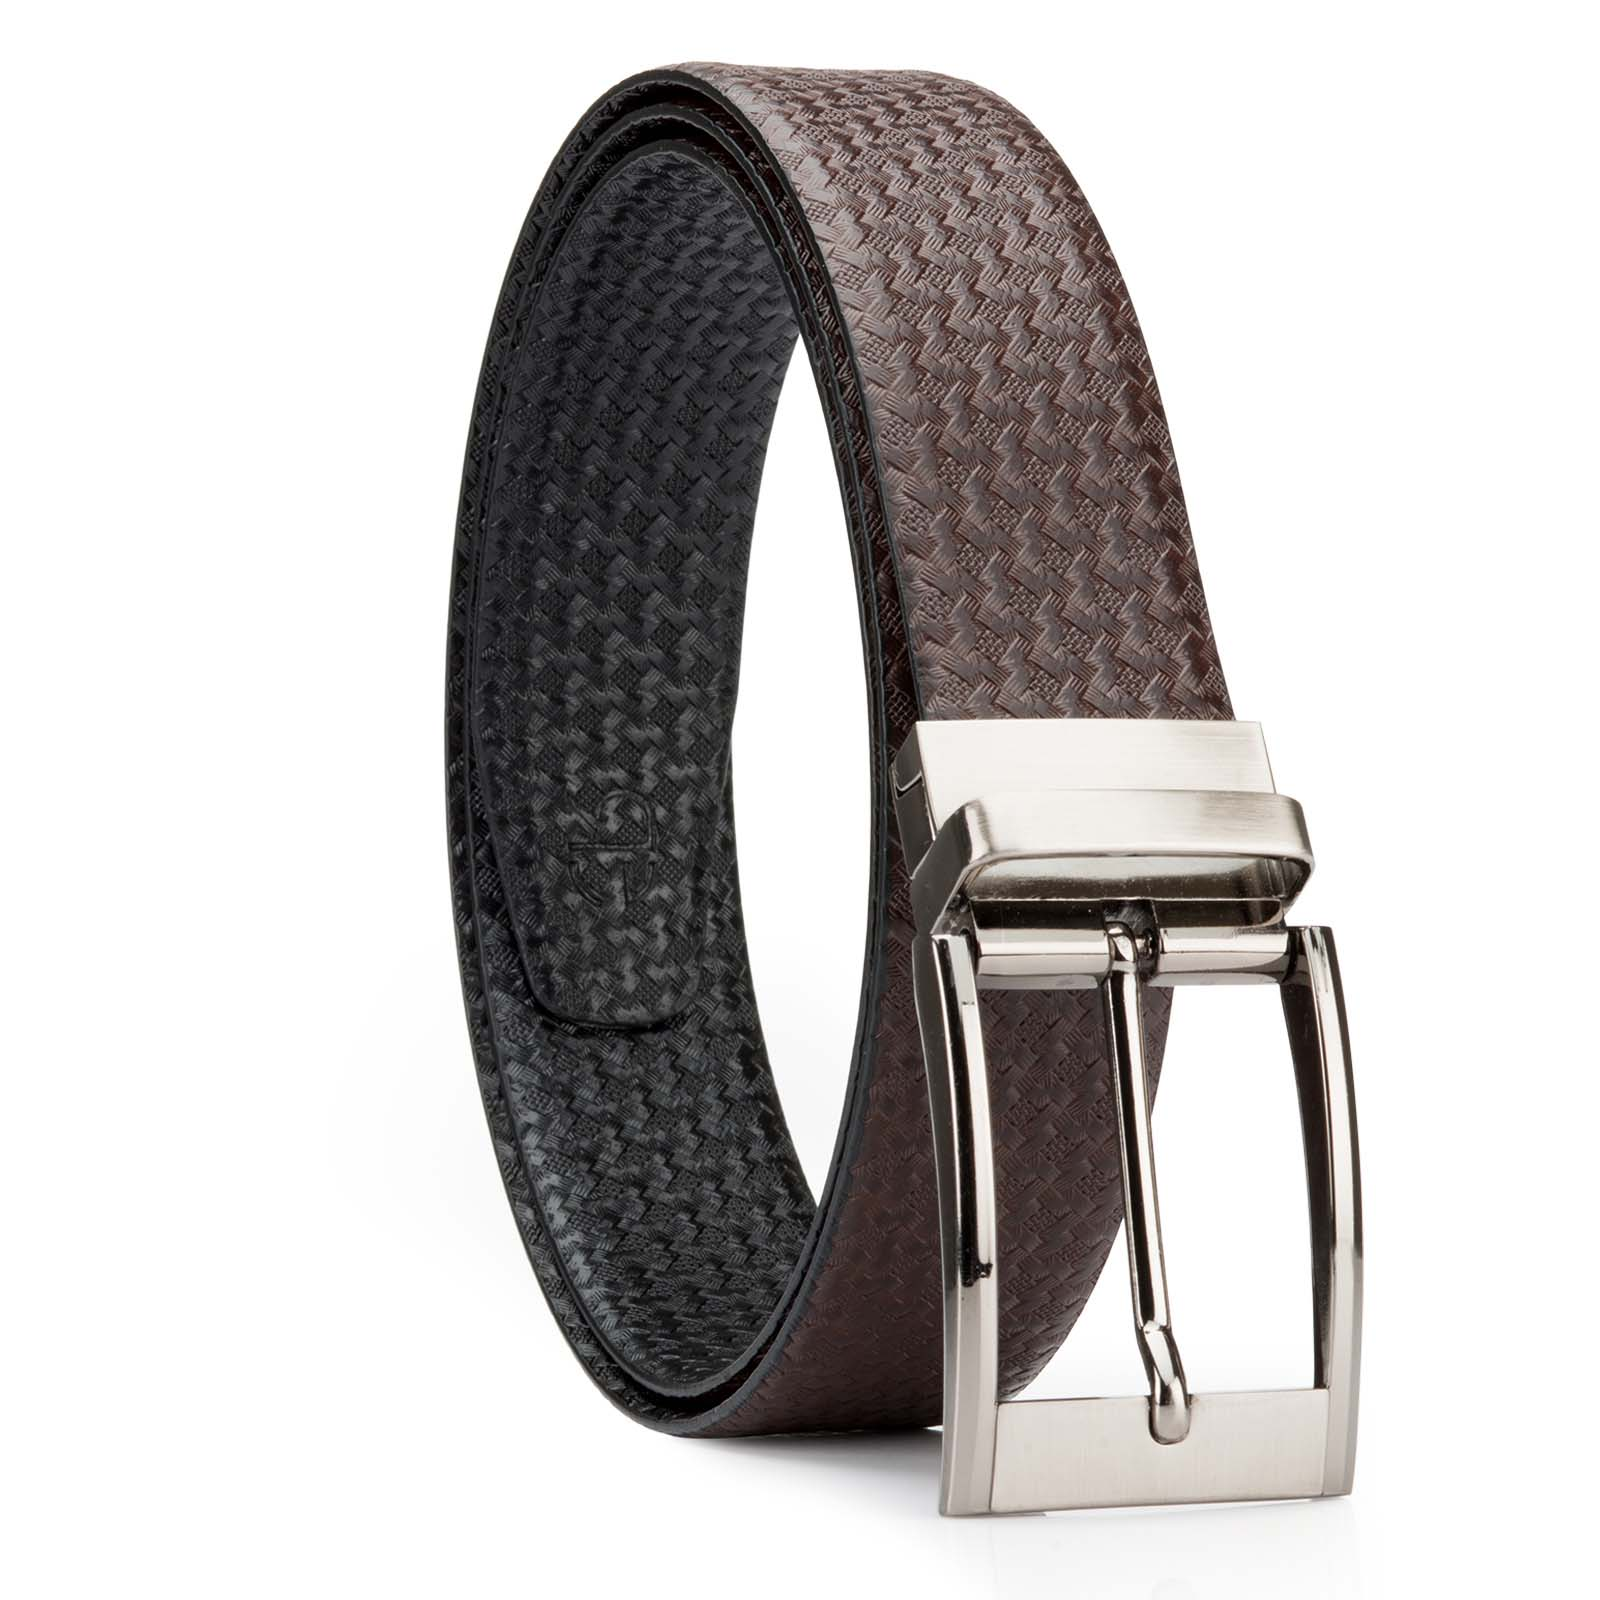 Black and Brown Nifty Design Leather Men's Formal Belts